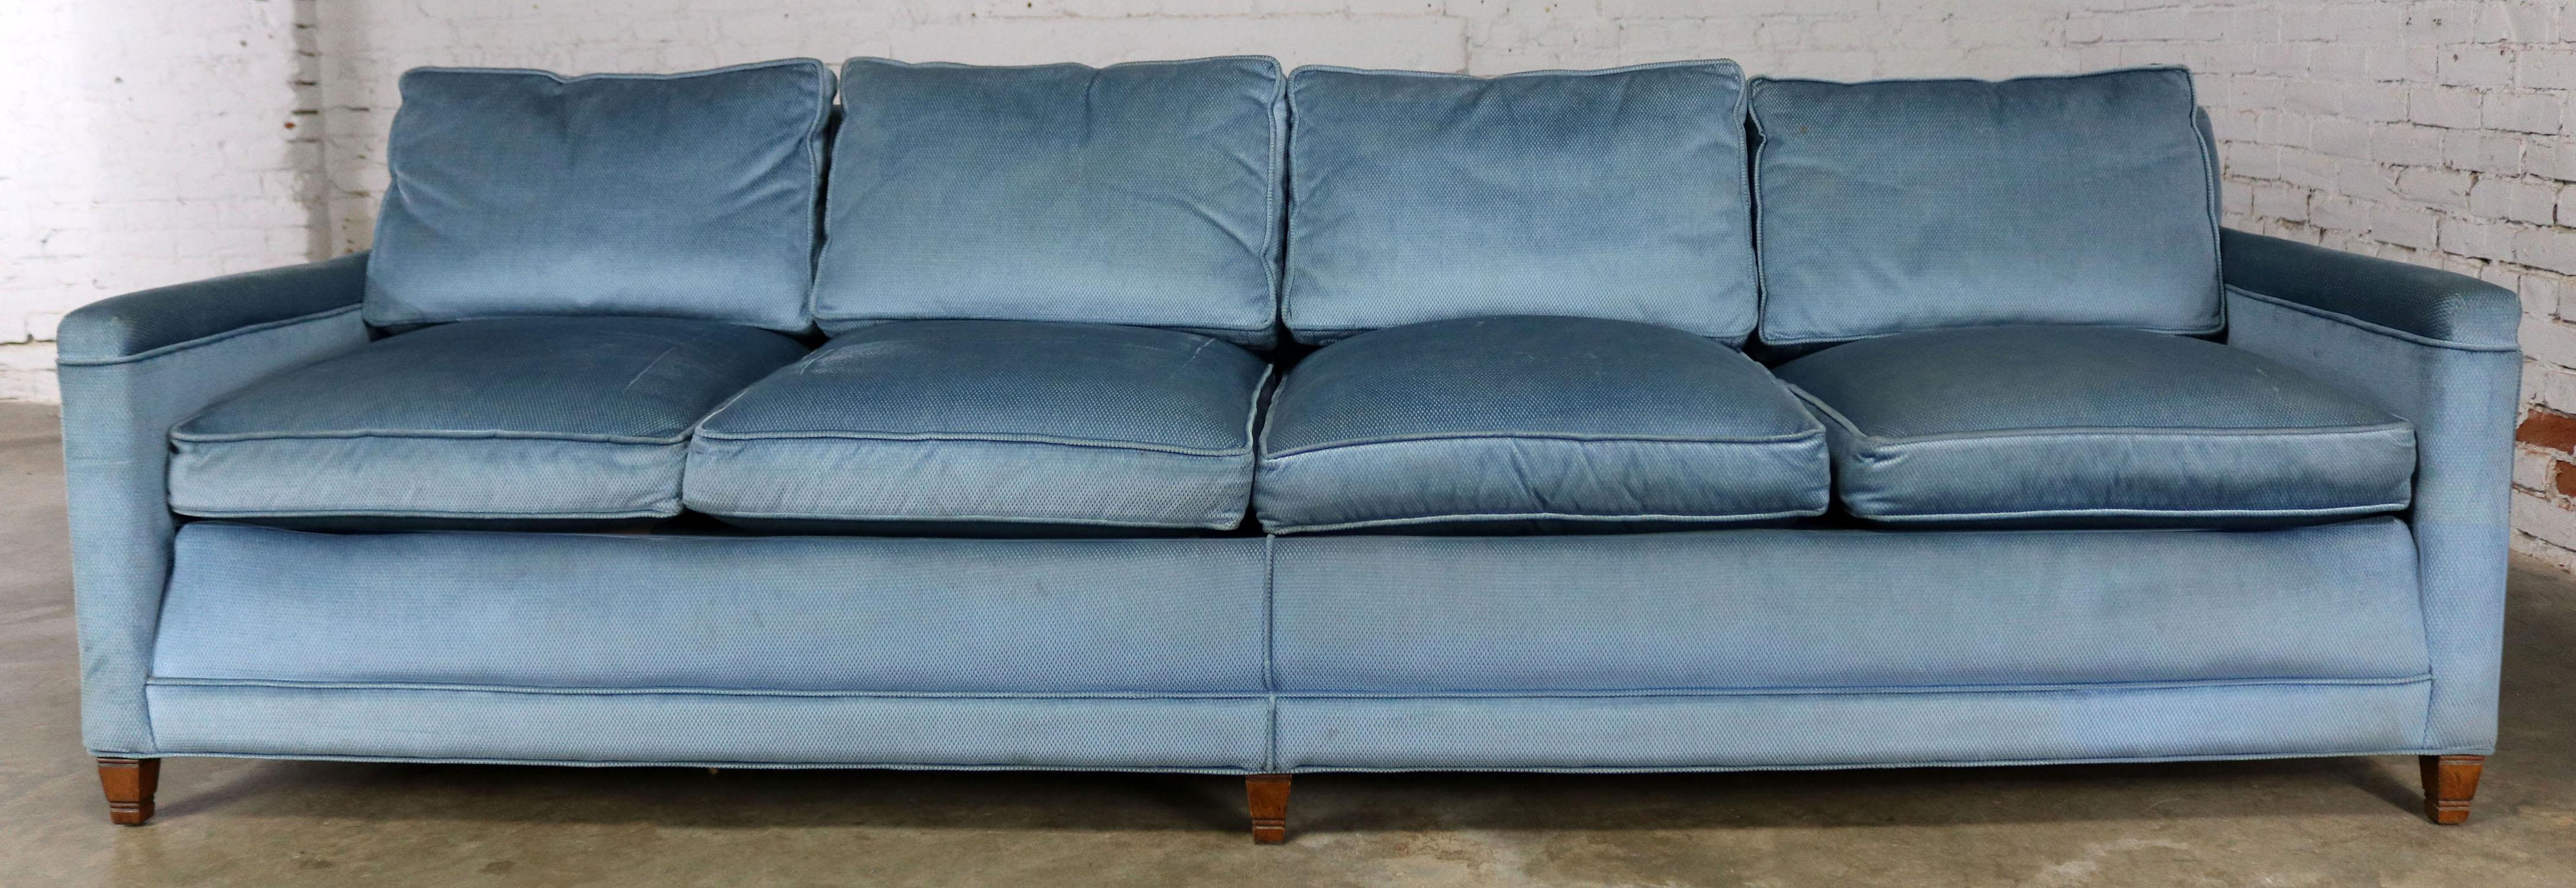 Slender And Simple Lawson Style Four Cushion Sofa In Powder Or Wedgwood  Blue Upholstery. This